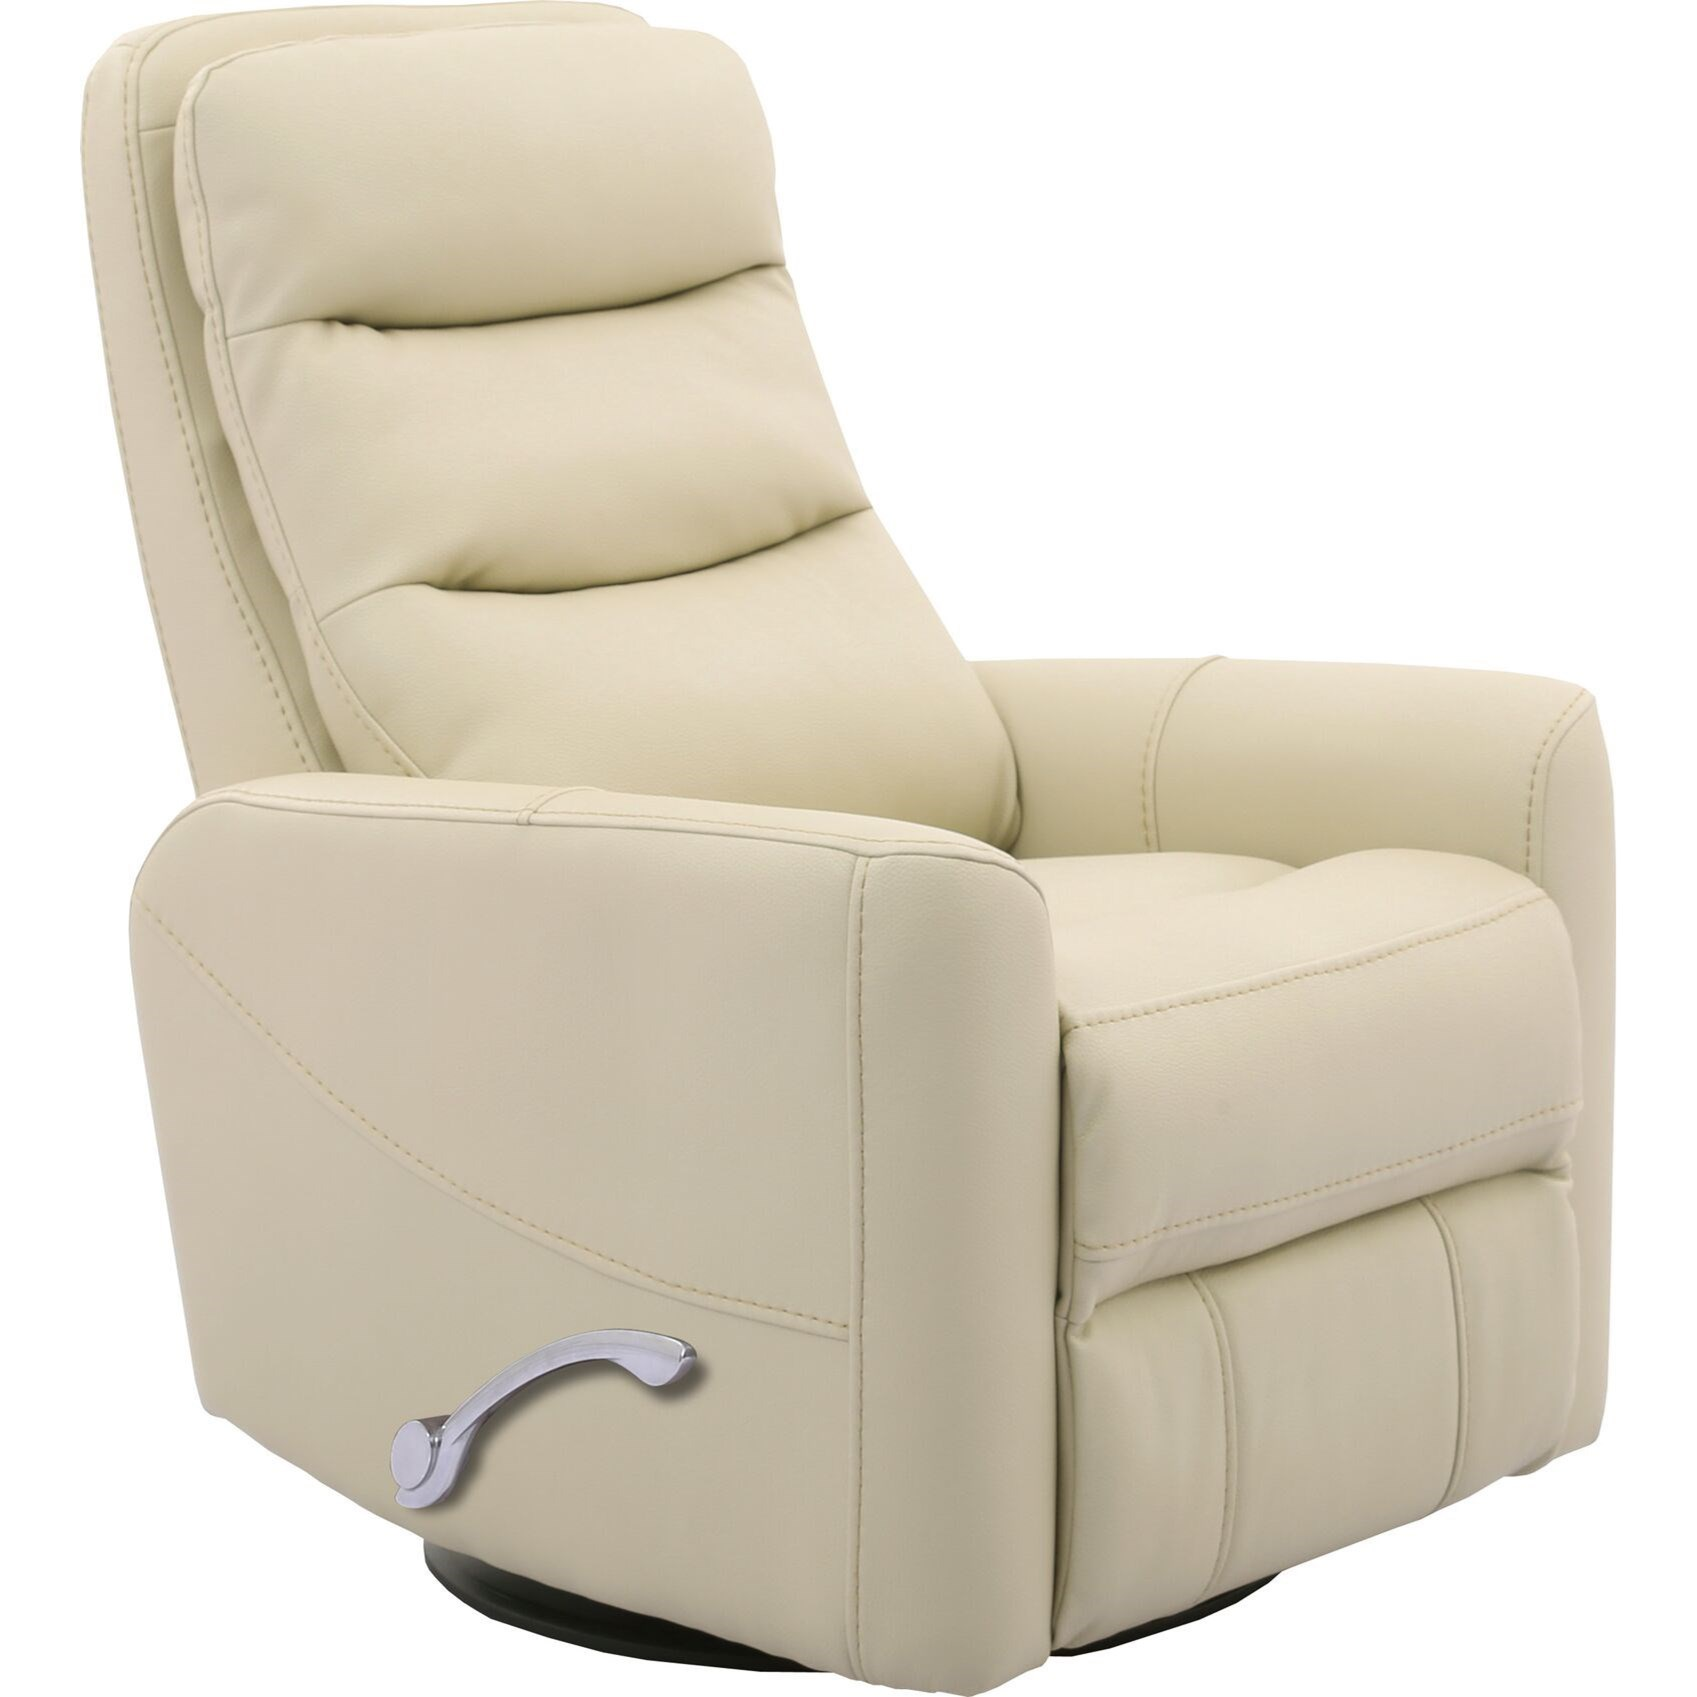 Hercules Swivel Glider Recliner by Parker Living at Miller Waldrop Furniture and Decor